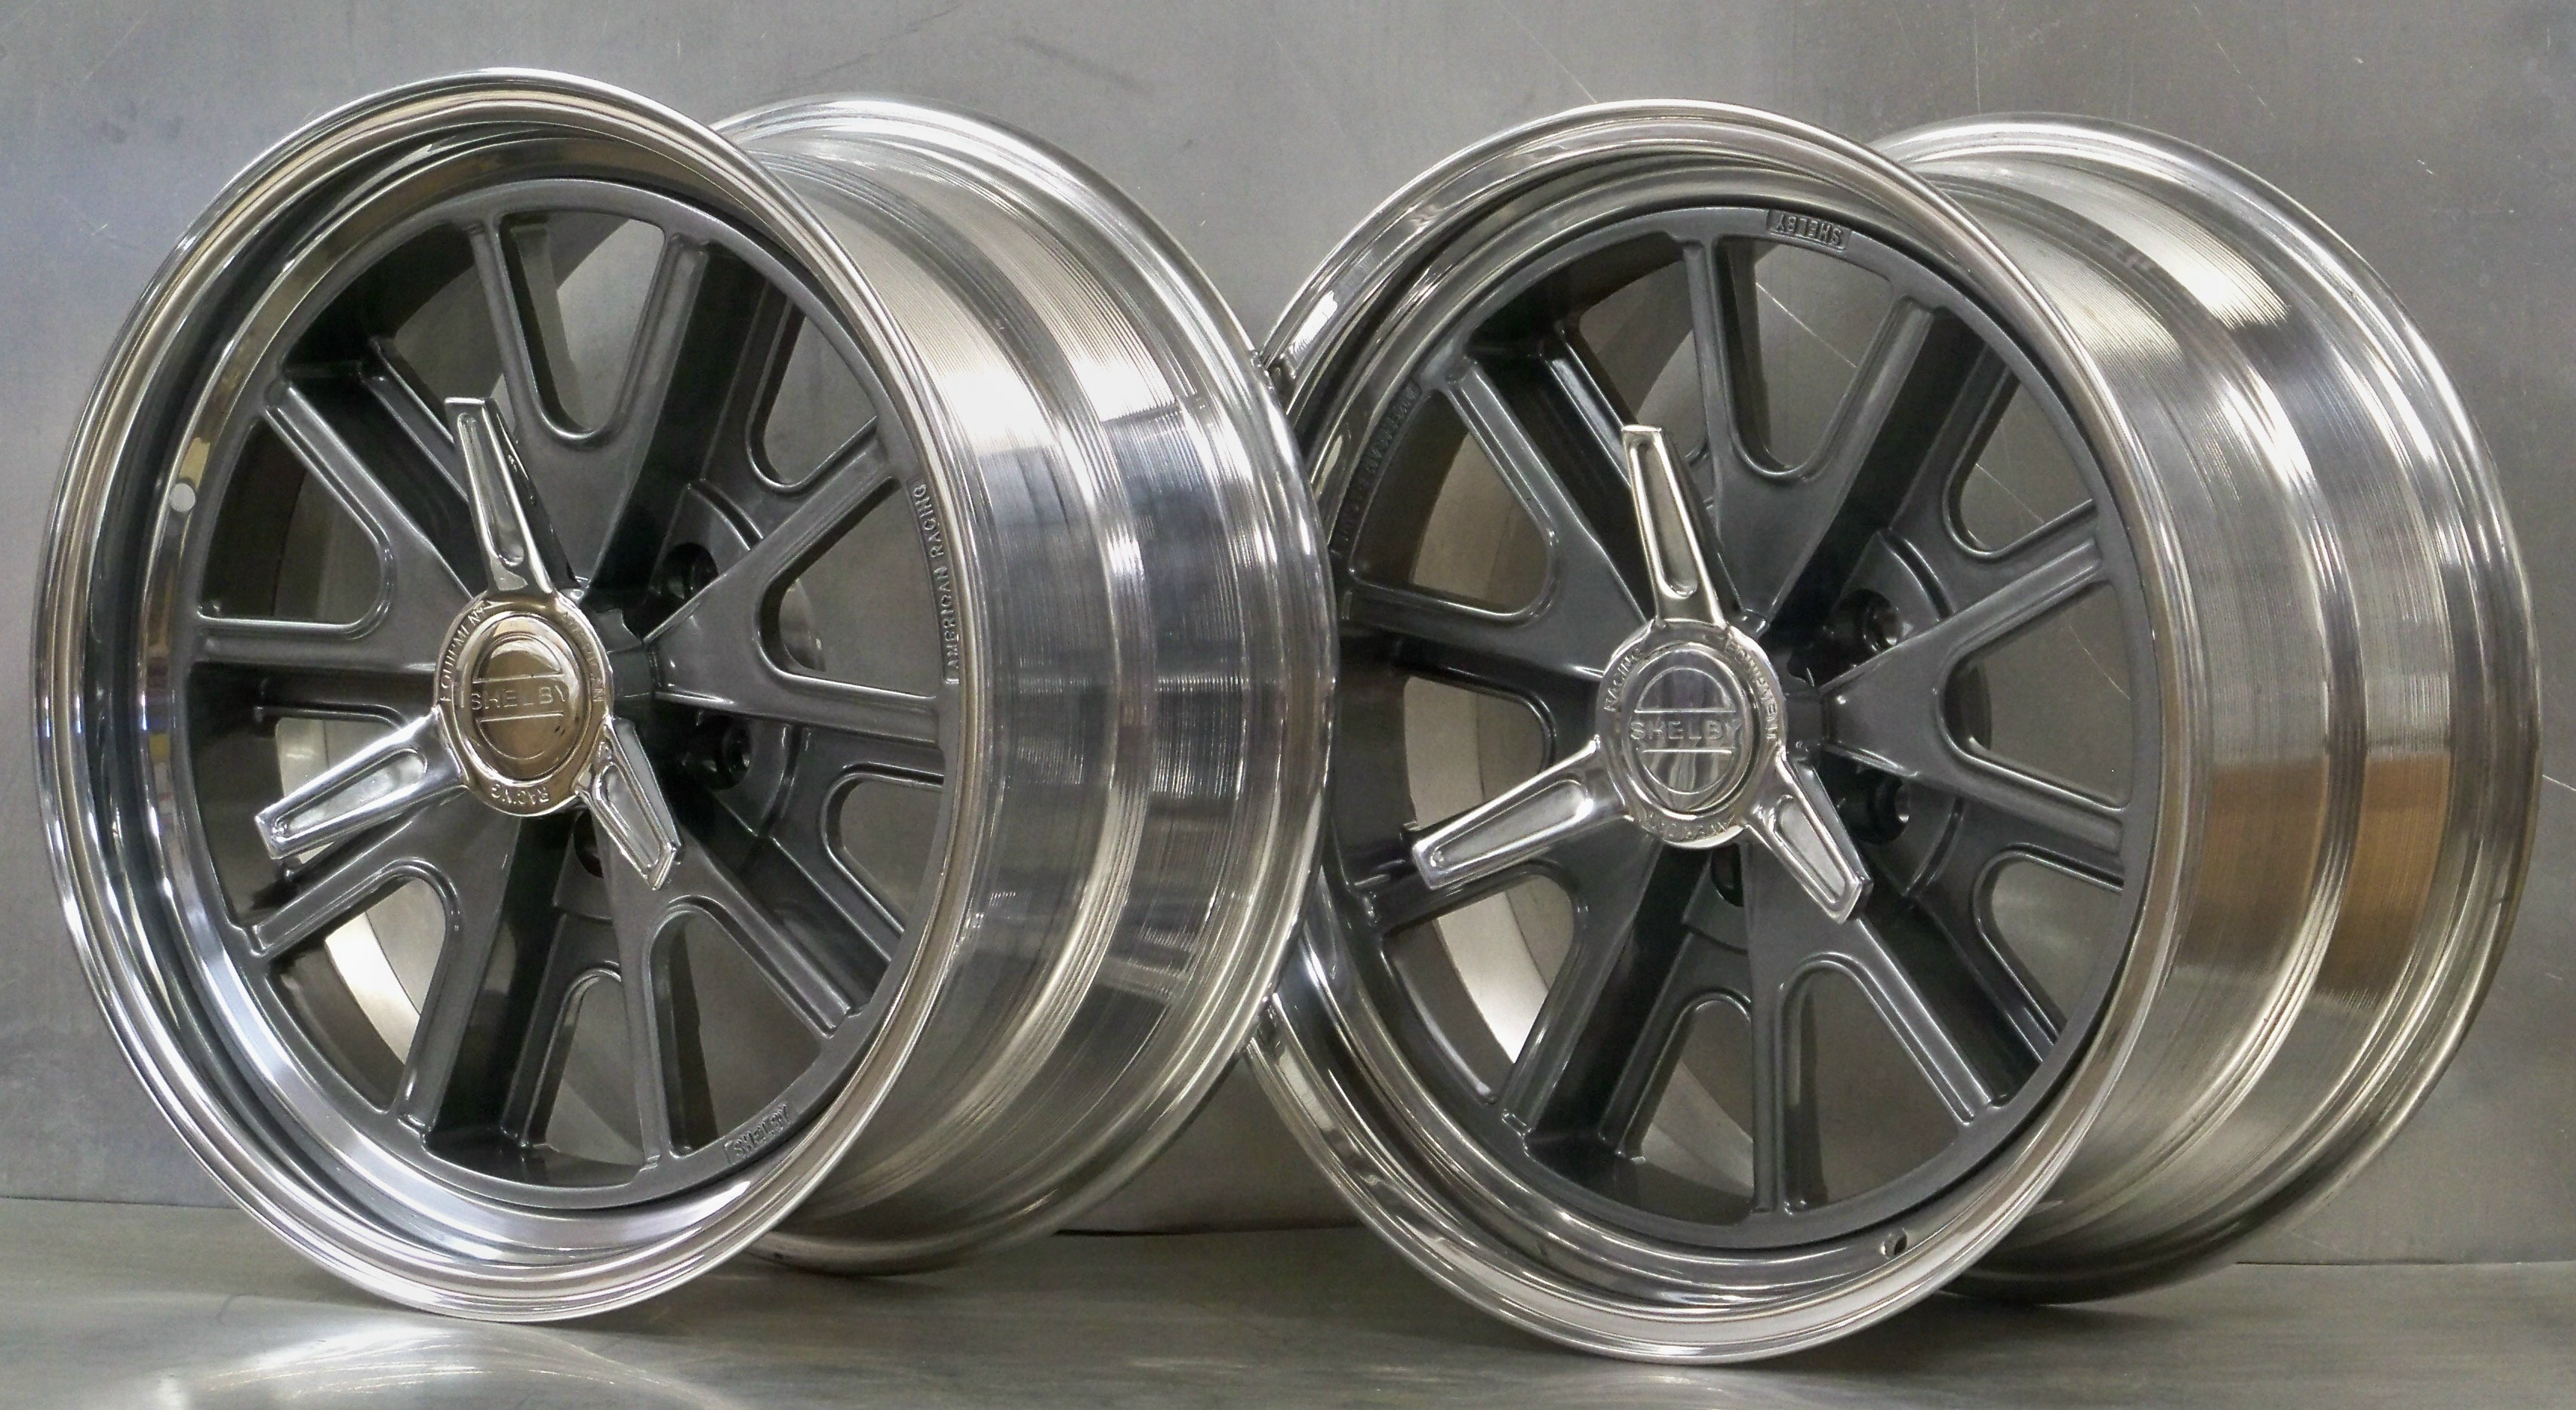 407 And 427 Shelby 174 5 Lug Vintage Wheels Mustang Hot